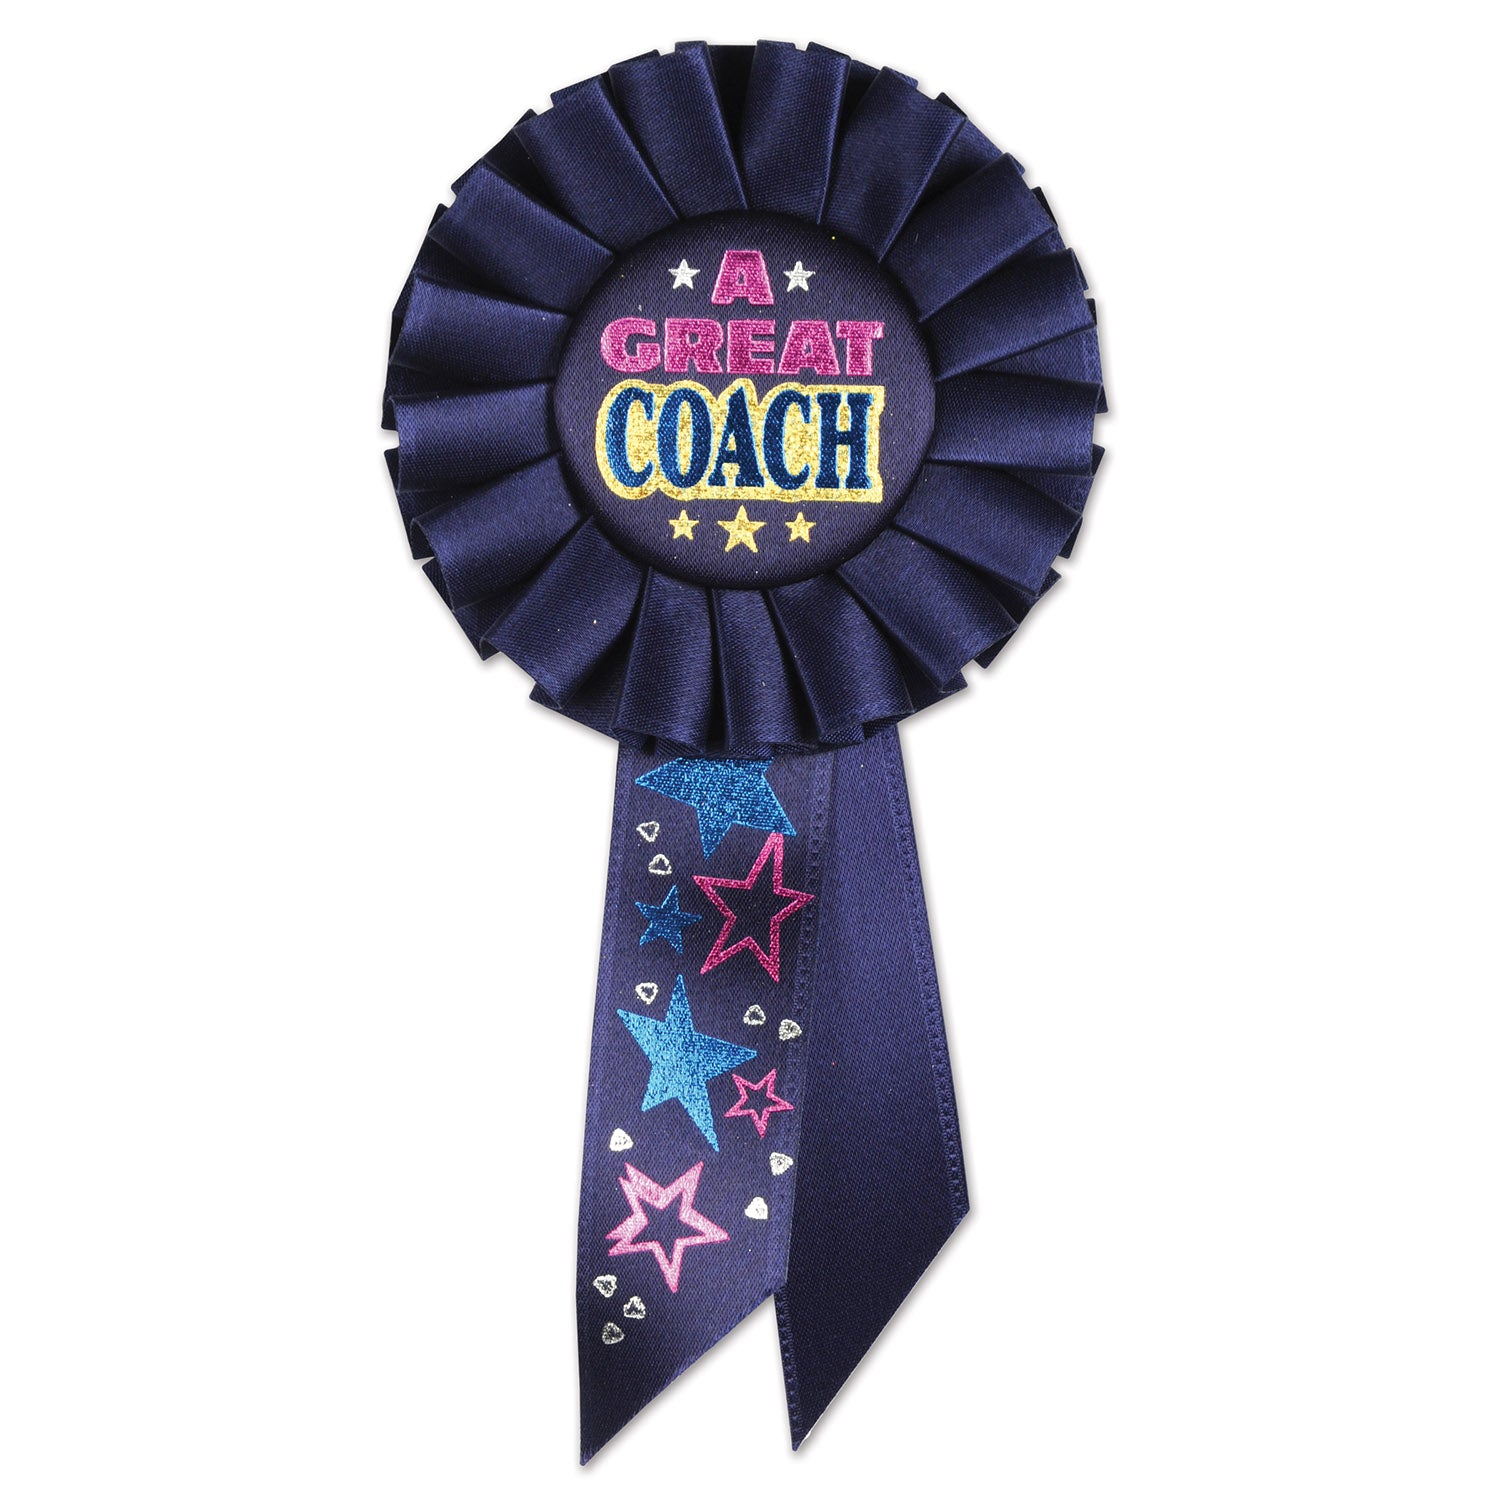 A Great Coach Rosette by Beistle - Sports Theme Decorations